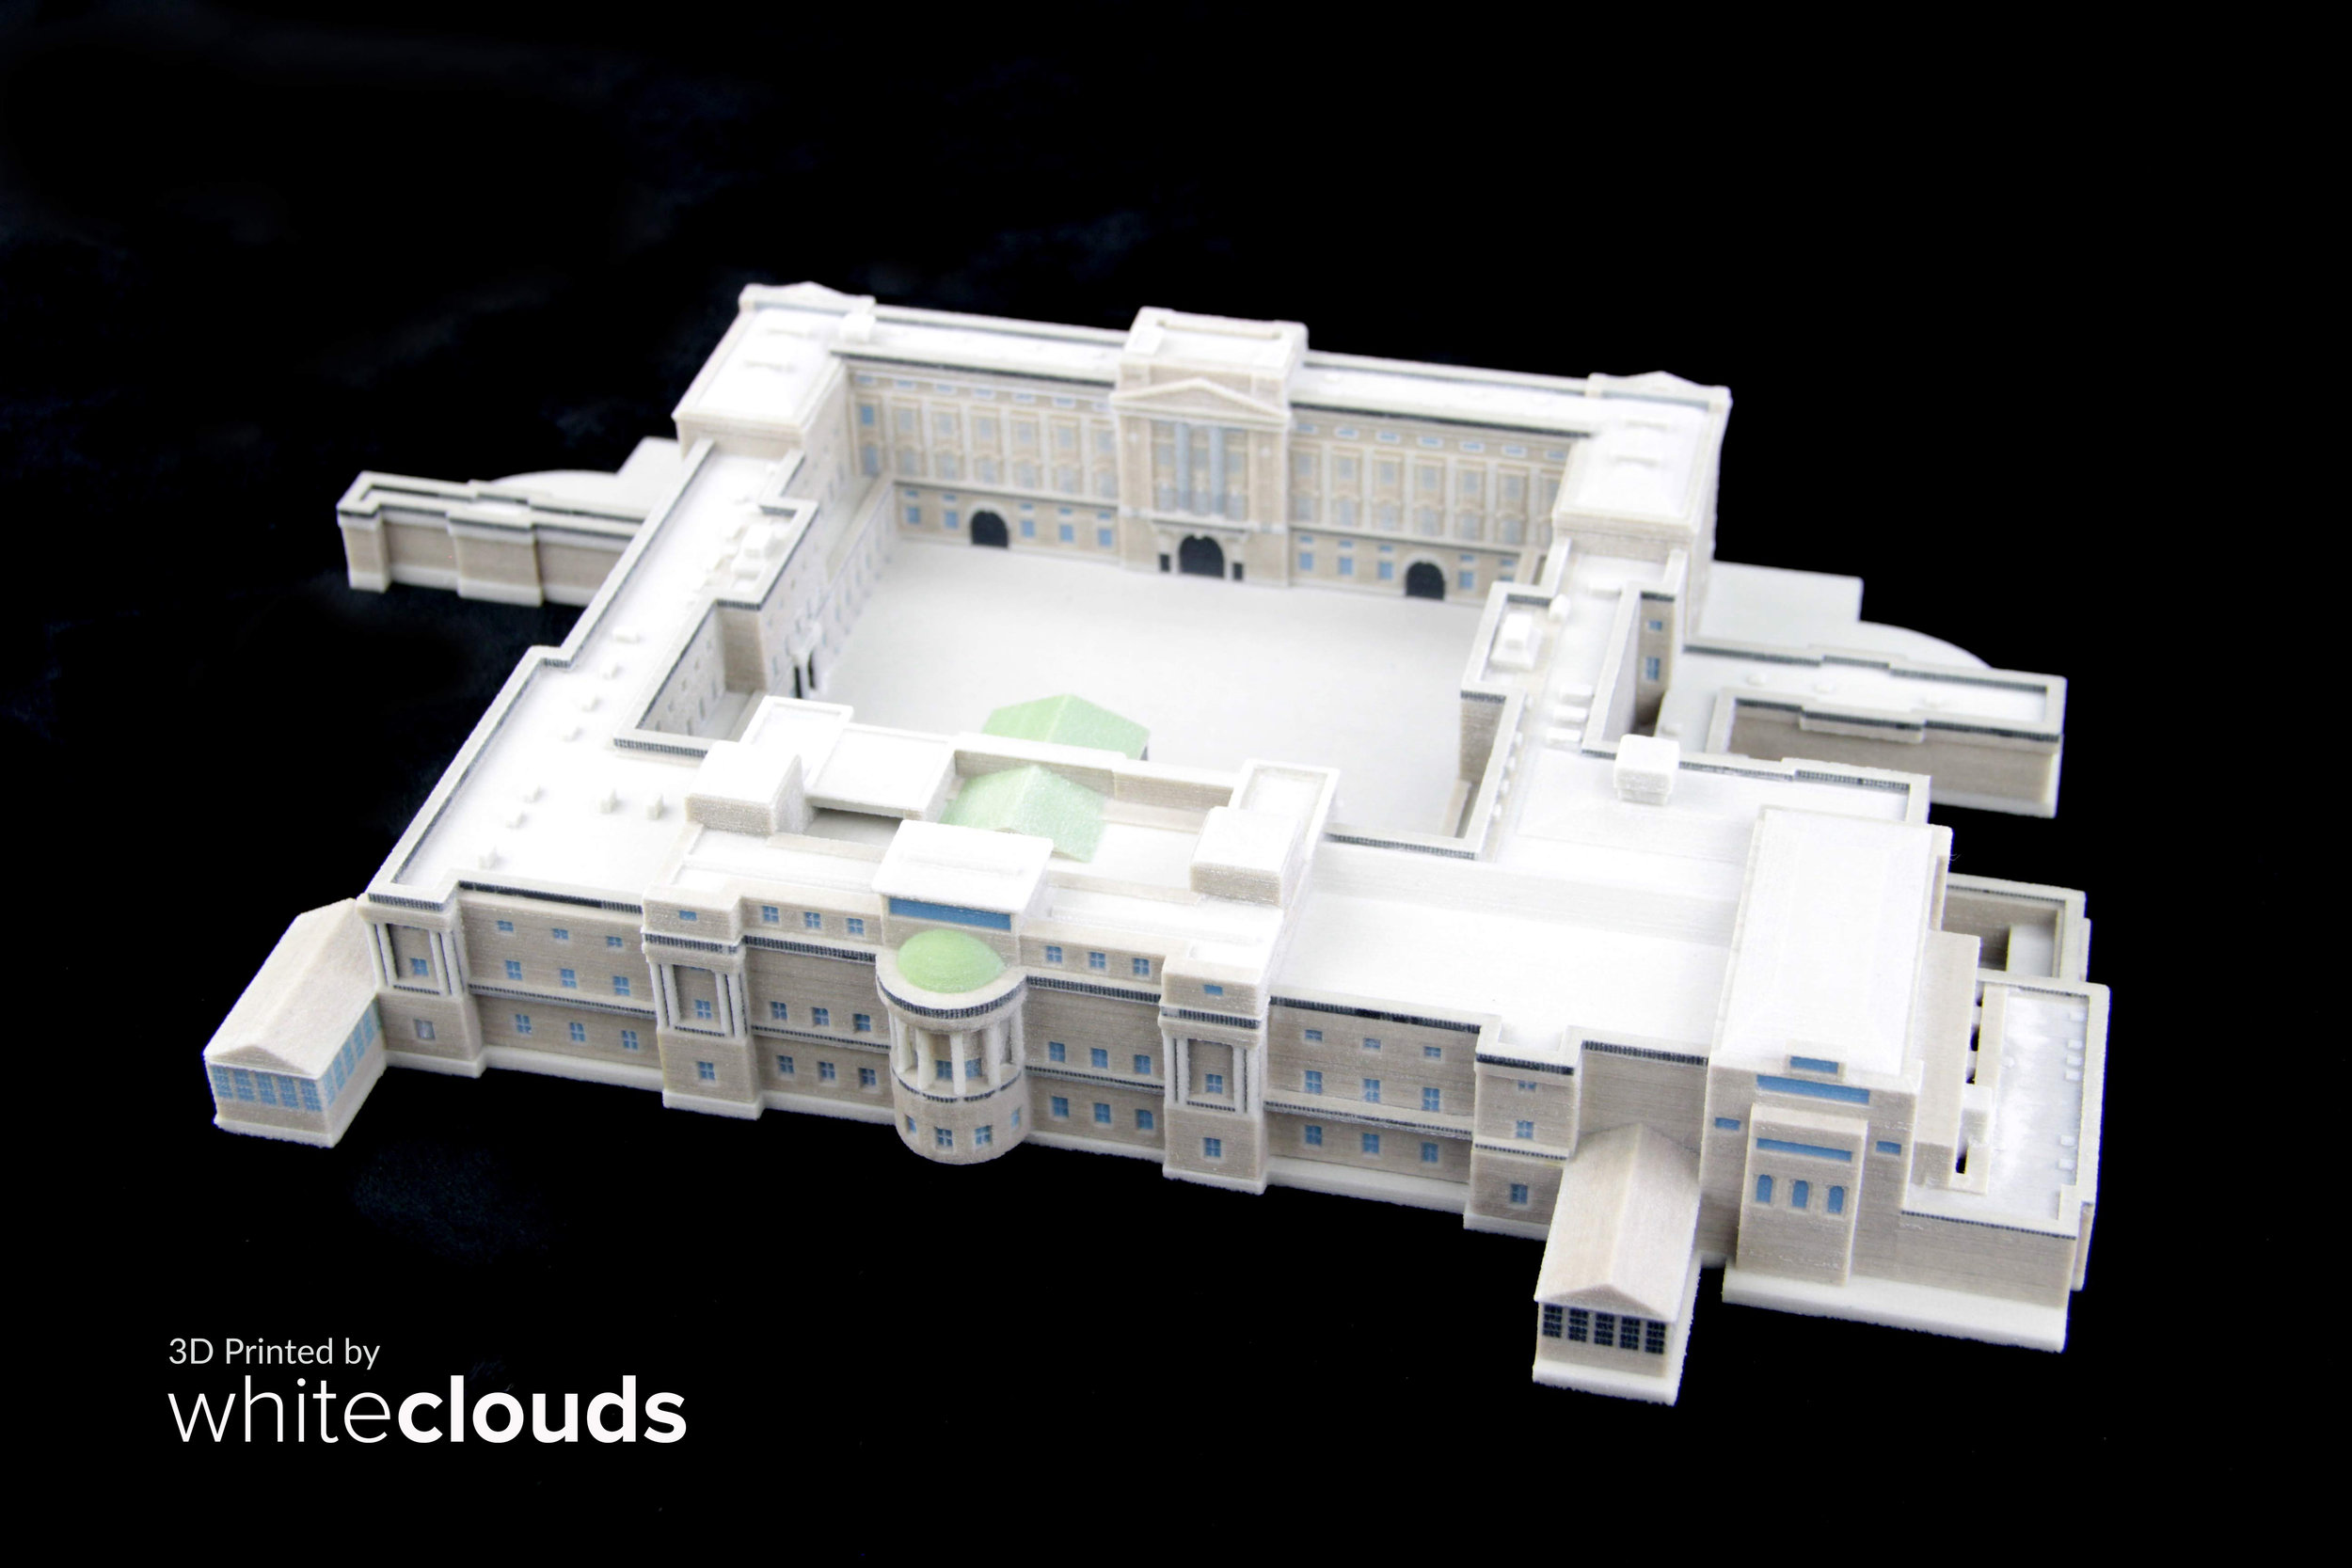 3D-Printed-WhiteClouds-Palace-Architectural-Buckingham-Palace-1.jpg